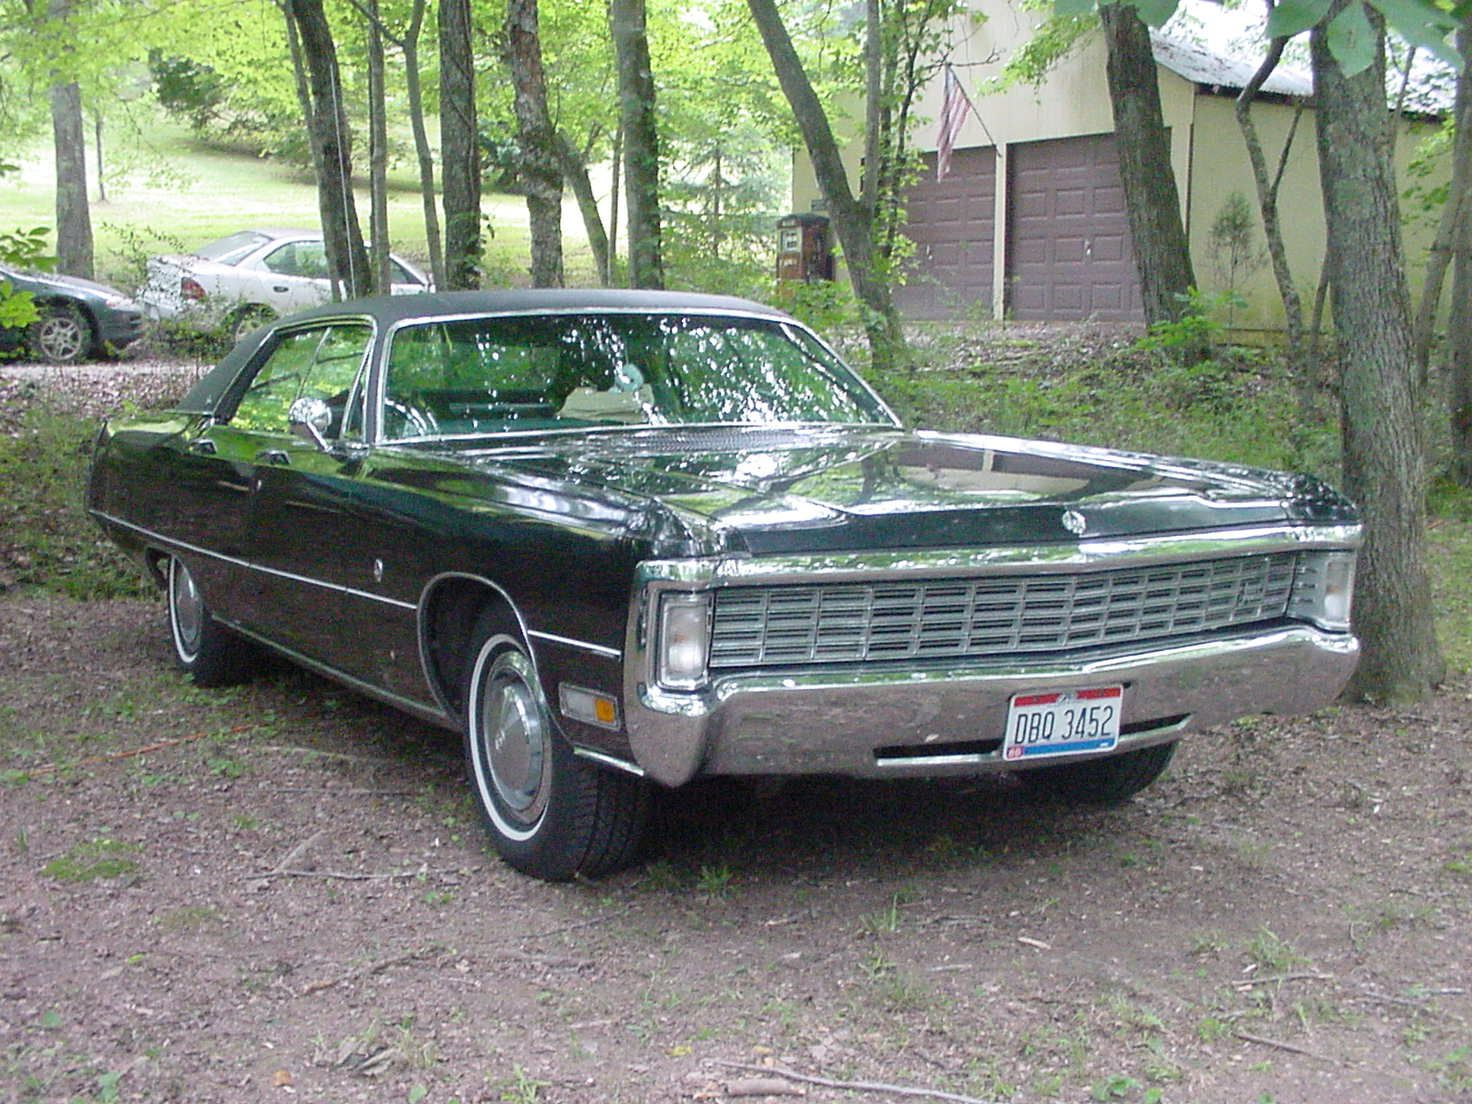 1970 Chrysler Imperial My First Ride With Images Chrysler